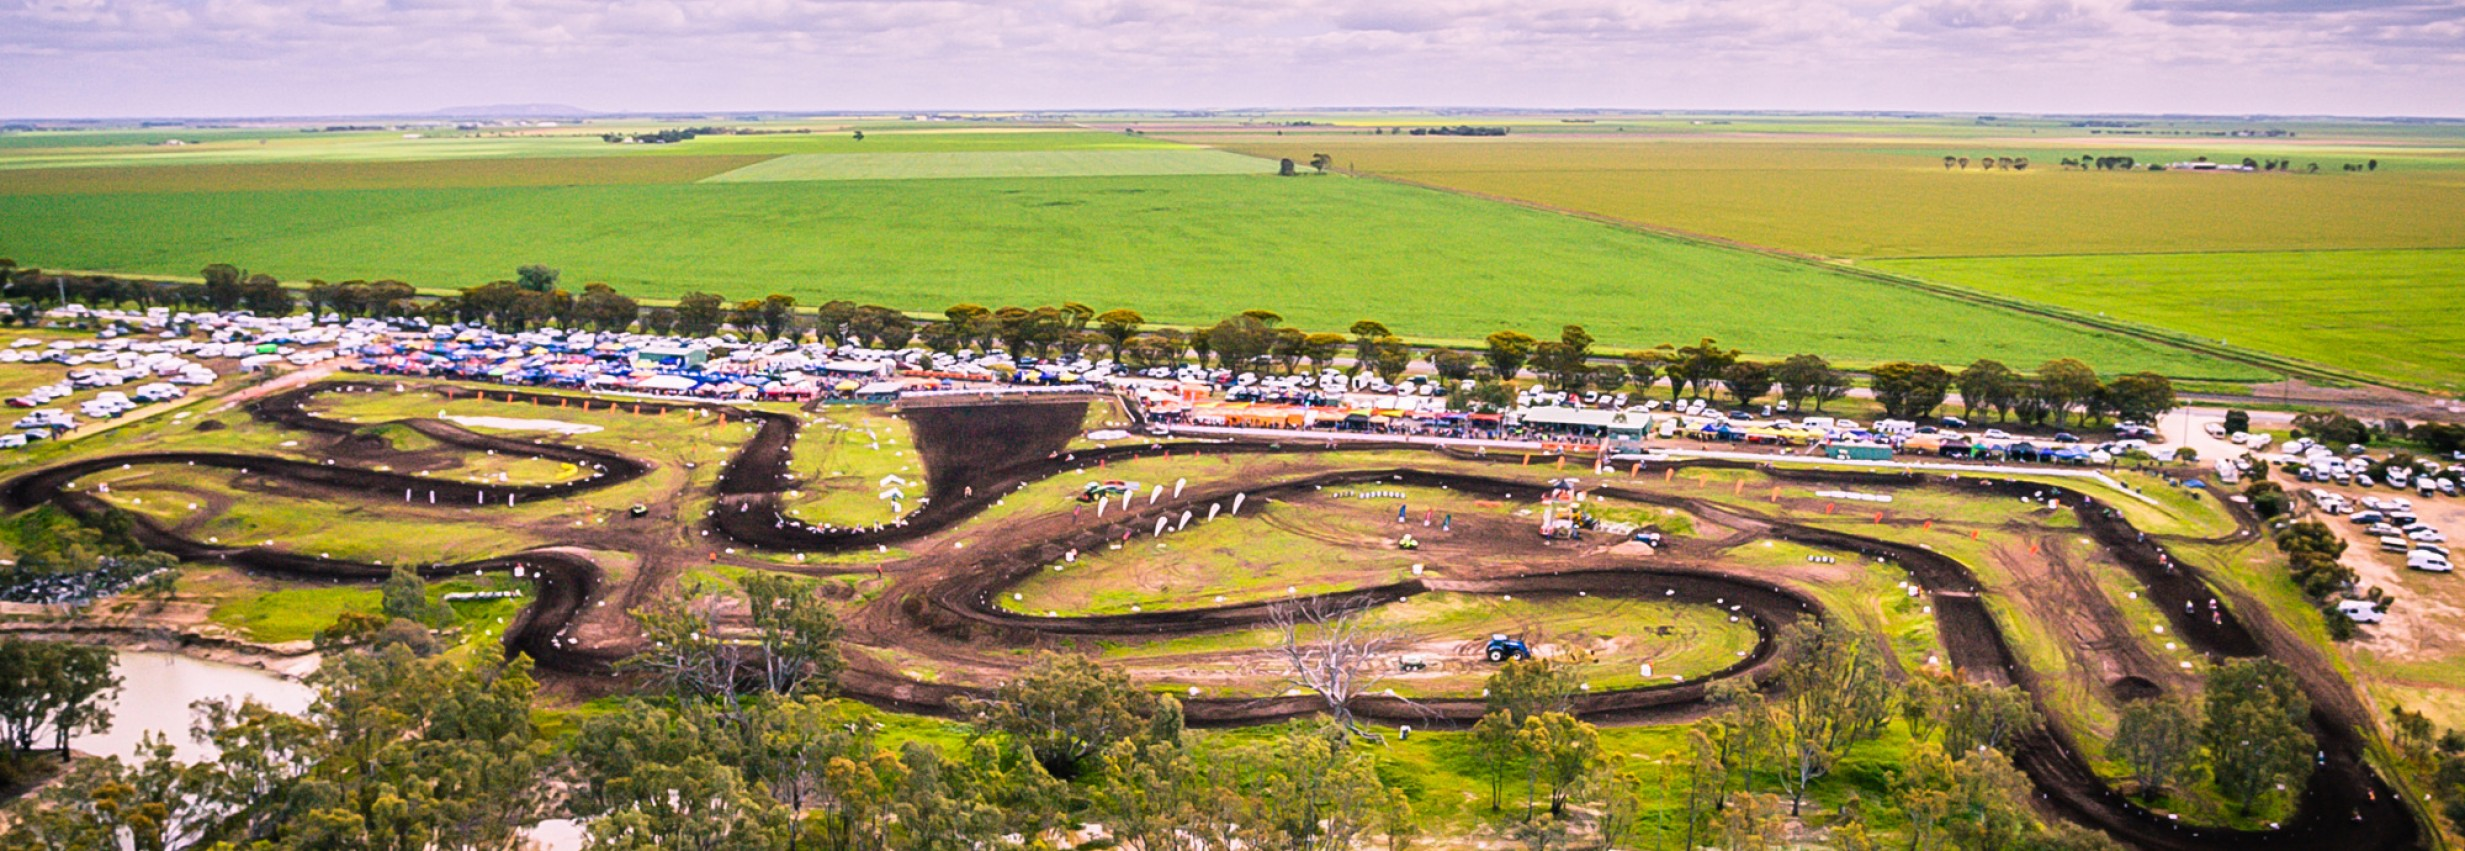 Dooen Motocross Circuit – Horsham Motorcycle Club